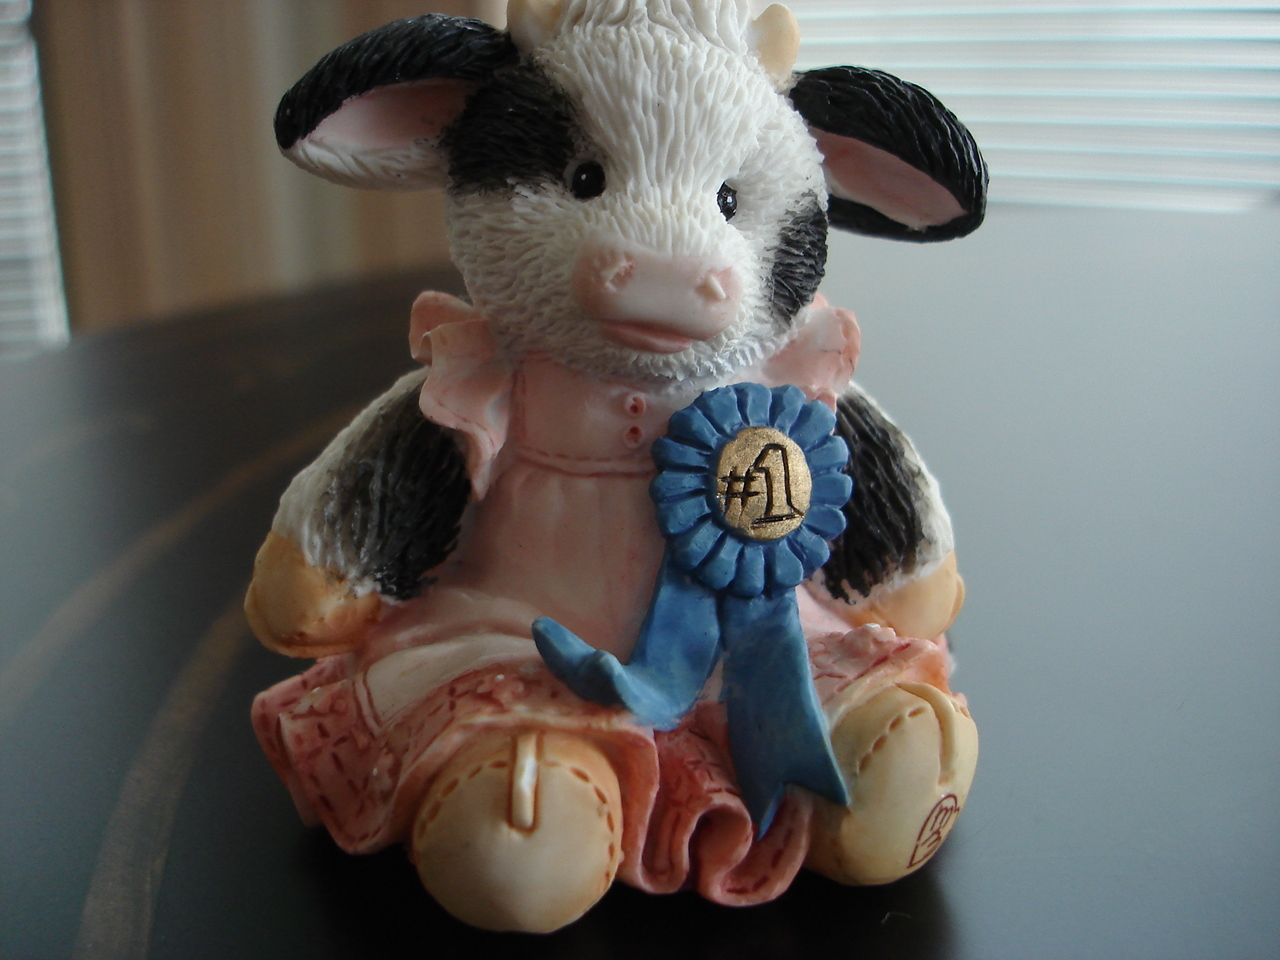 Mary Moo Moos, Cream of Crop, Enesco Figurine, 1993